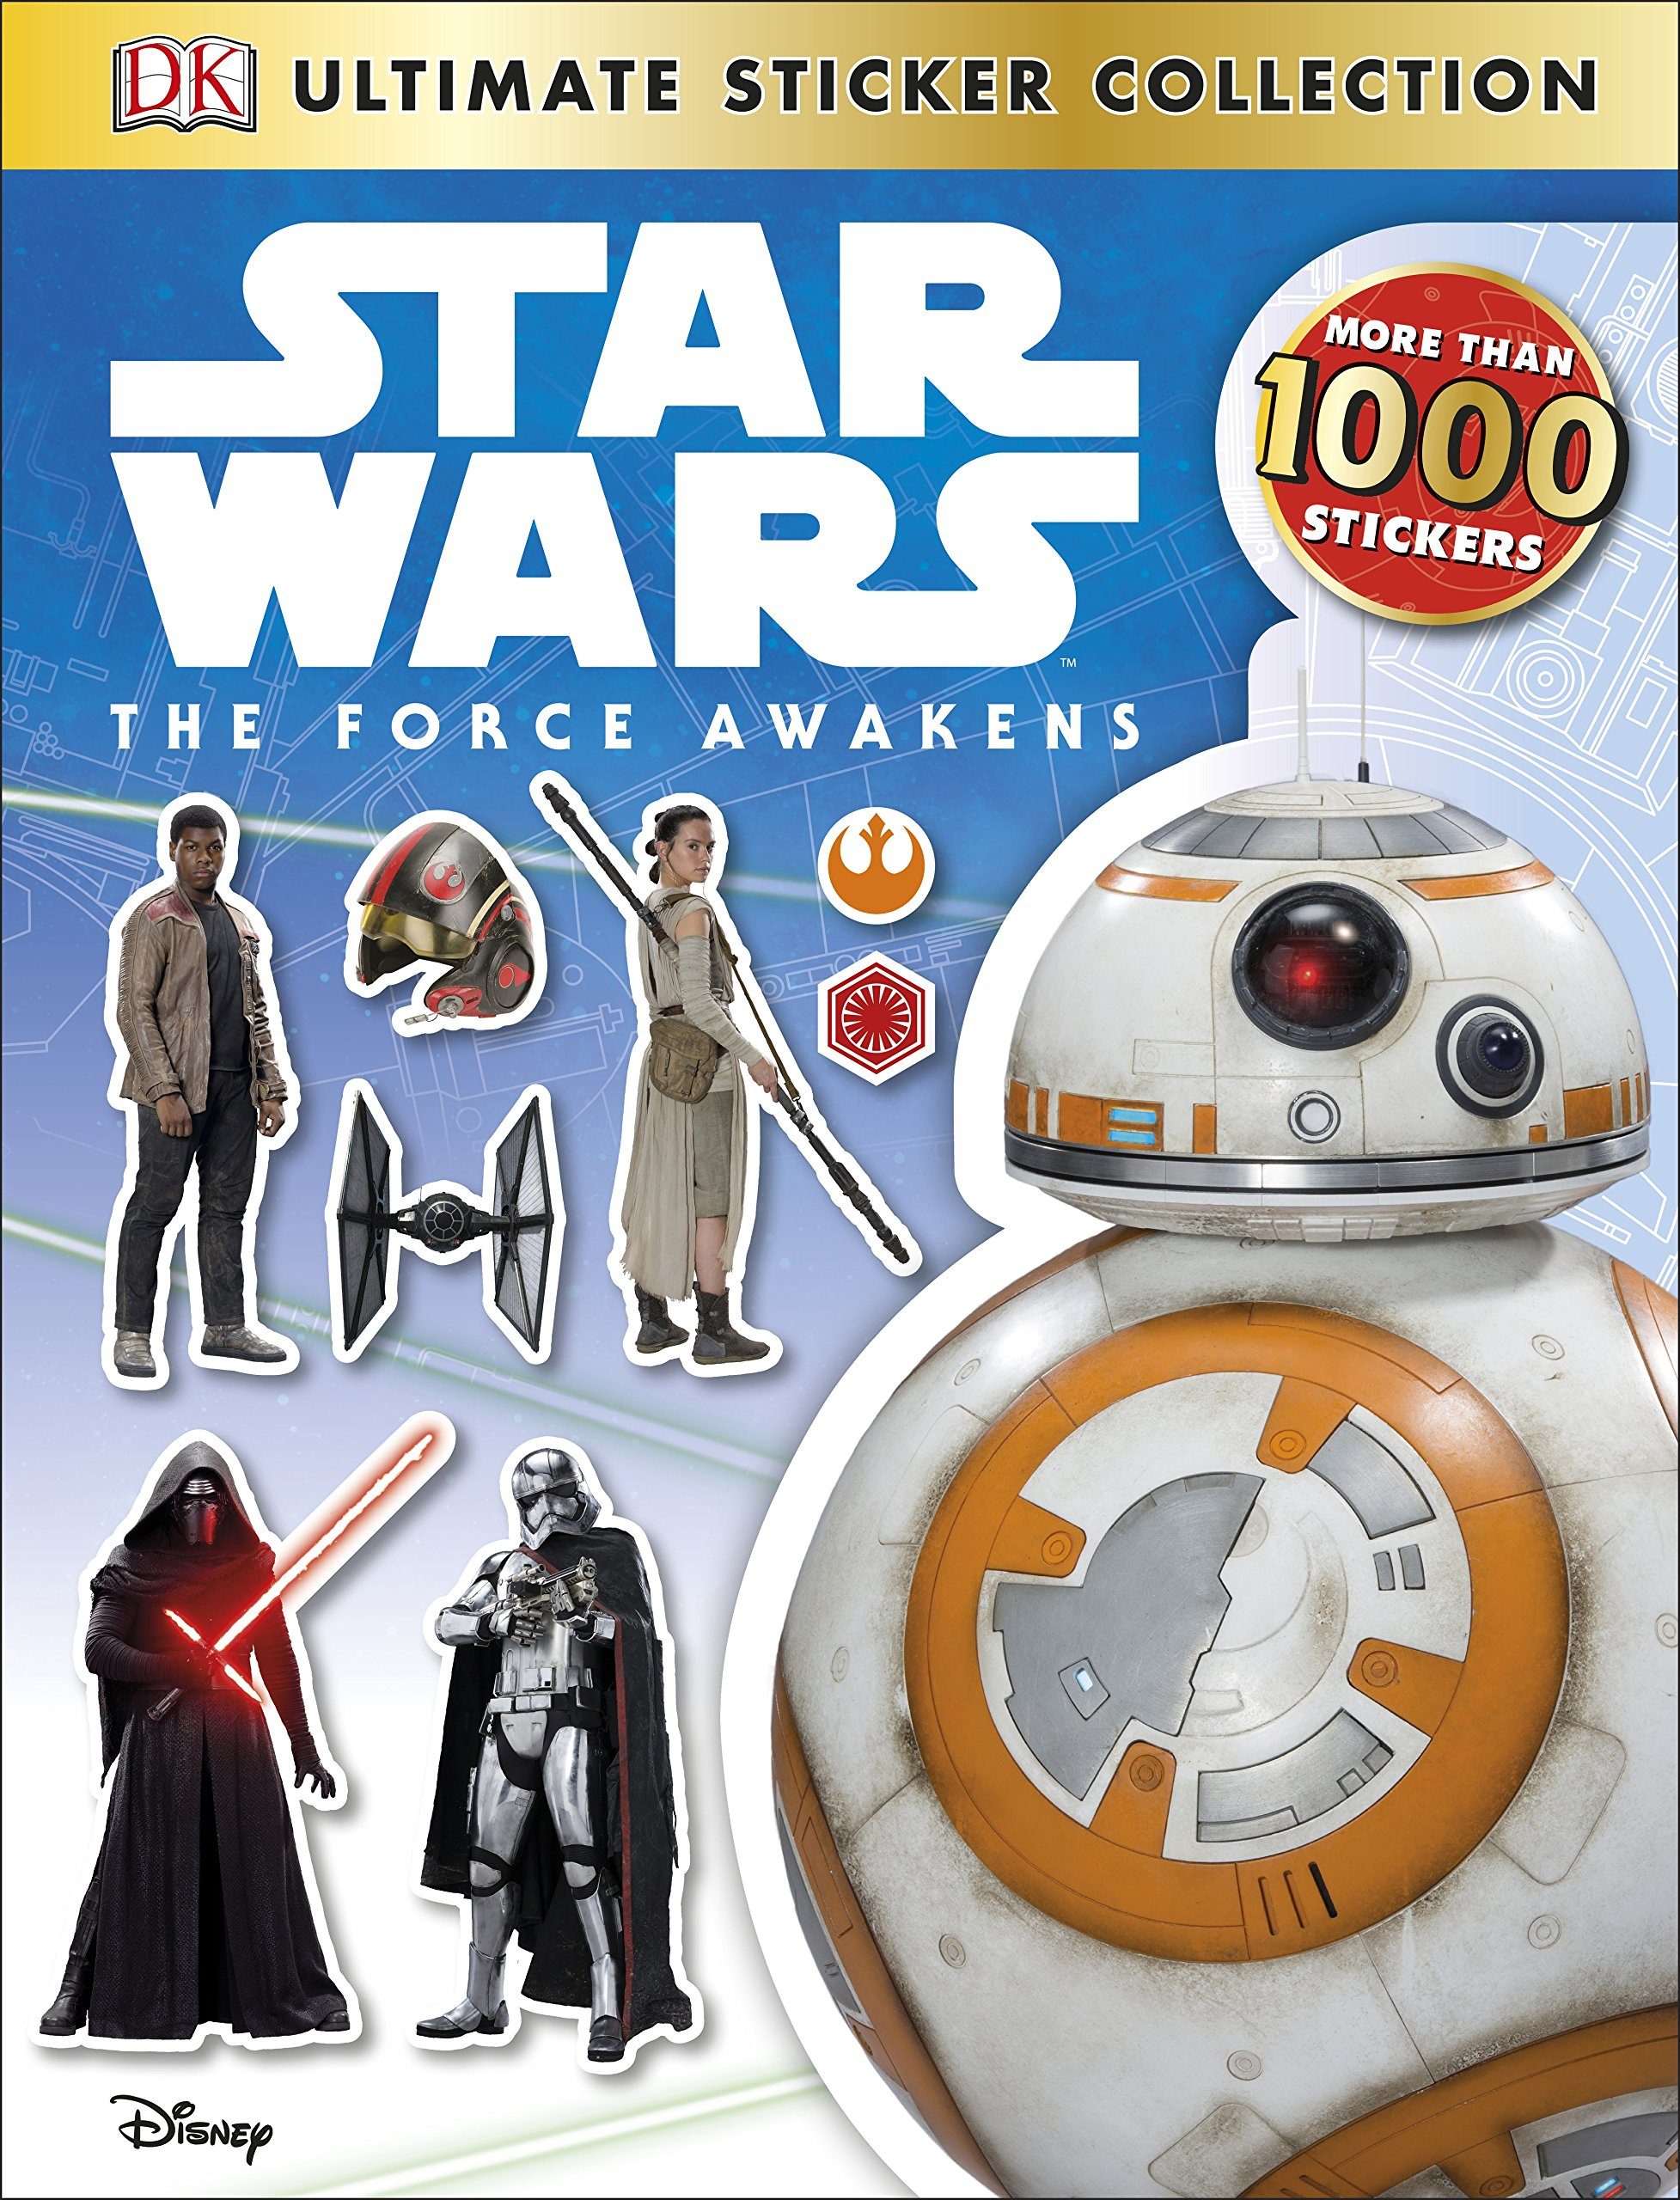 Star Wars The Force Awakens: Ultimate Sticker Collection